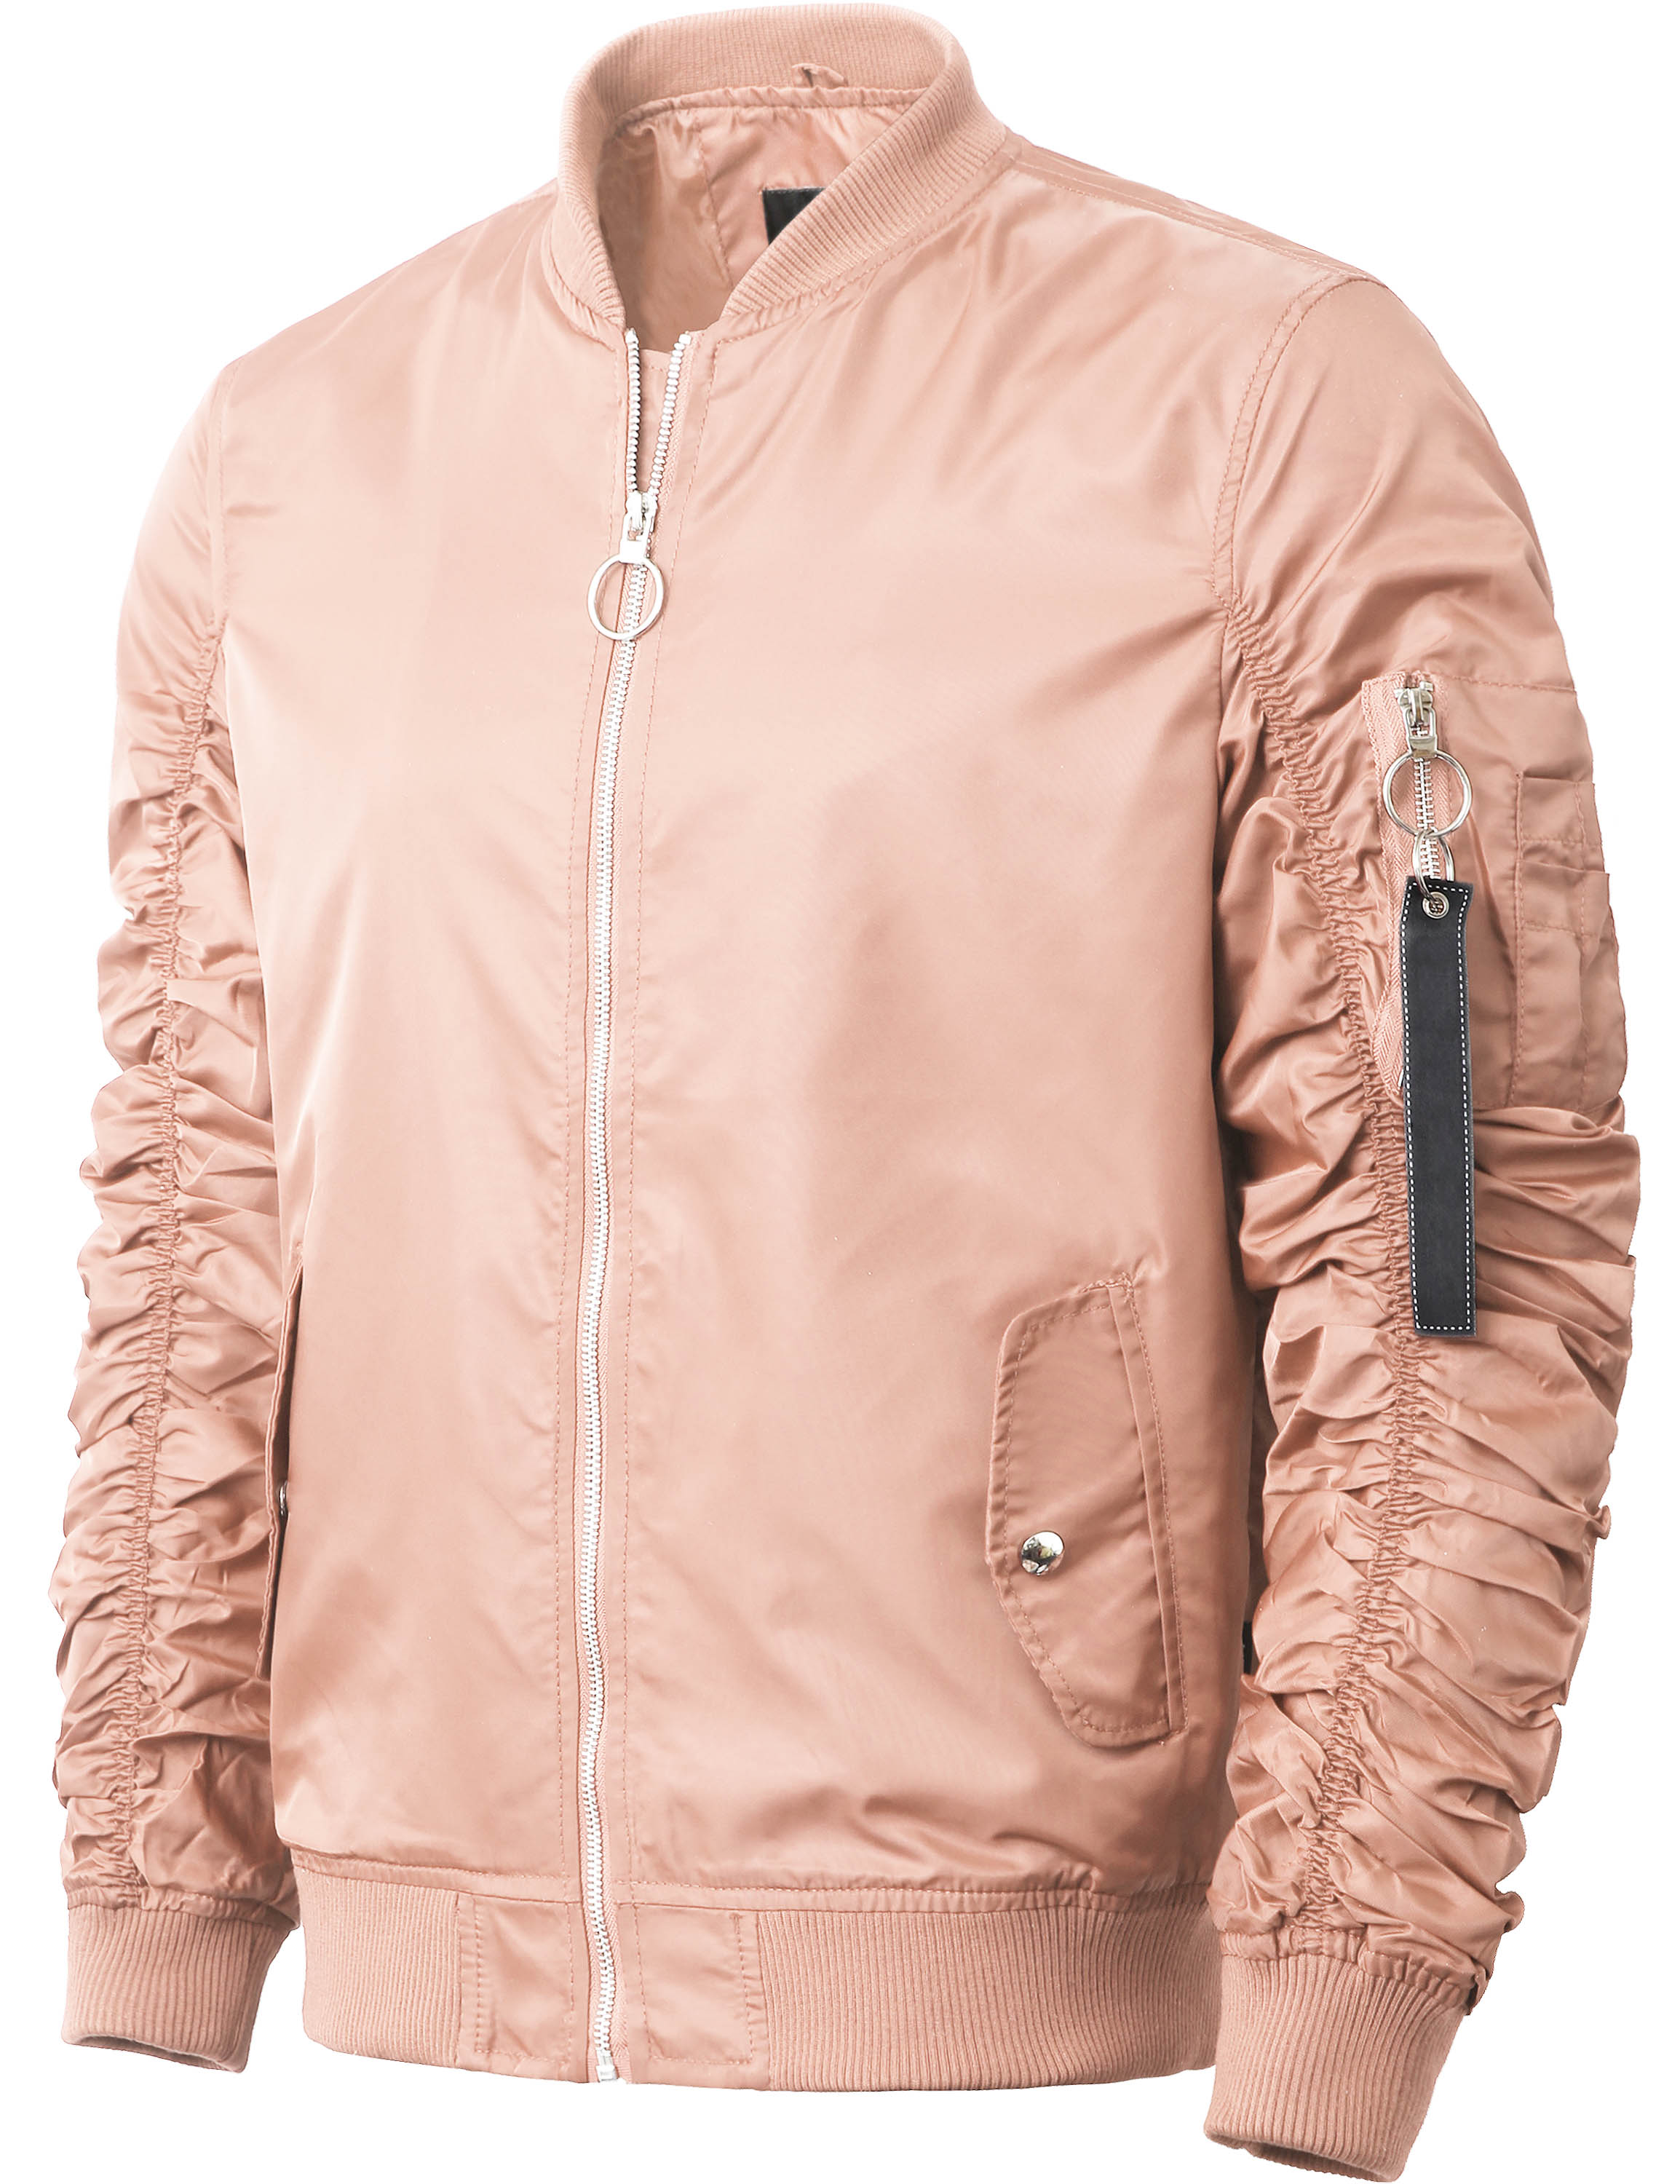 Mens Ruched Bomber Jacket Lightweight Waterproof Nylon Windbreaker